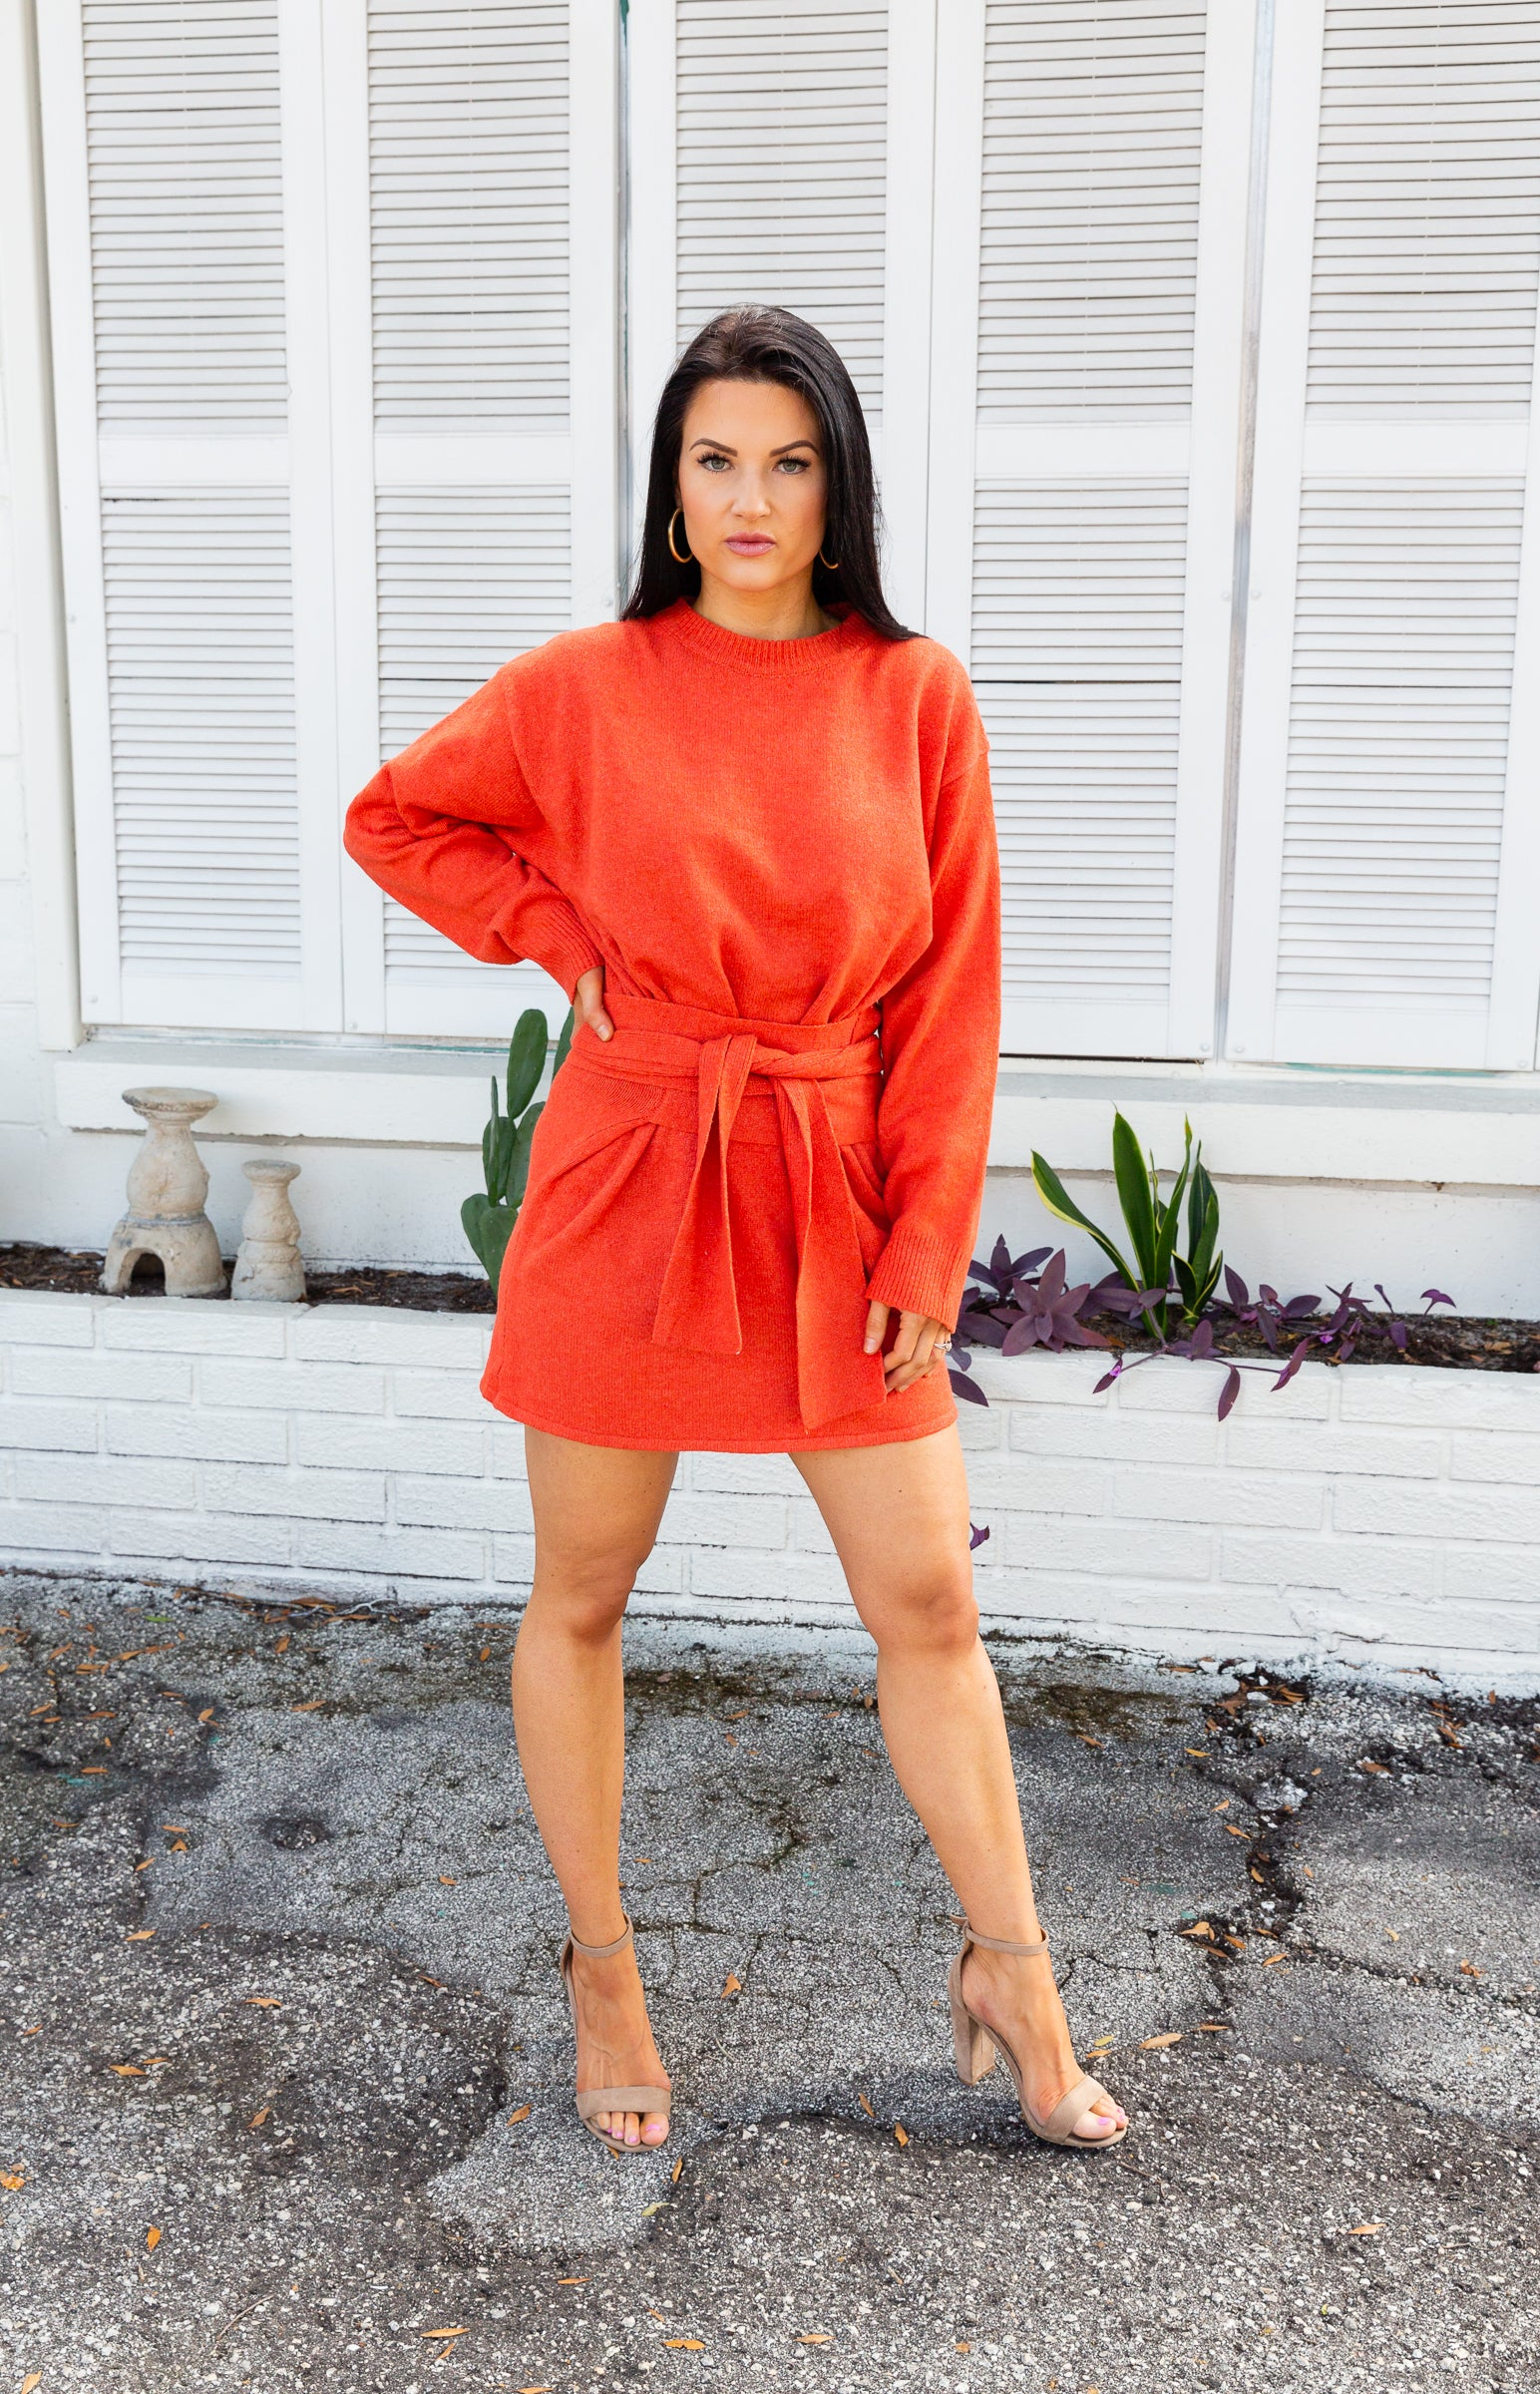 Long loose sleeves attach to a banded u-neckline on an oversized dress silhouette. It has fabric ties that come from the sides at the waist to cinch and secure at the front of the sweater dress.